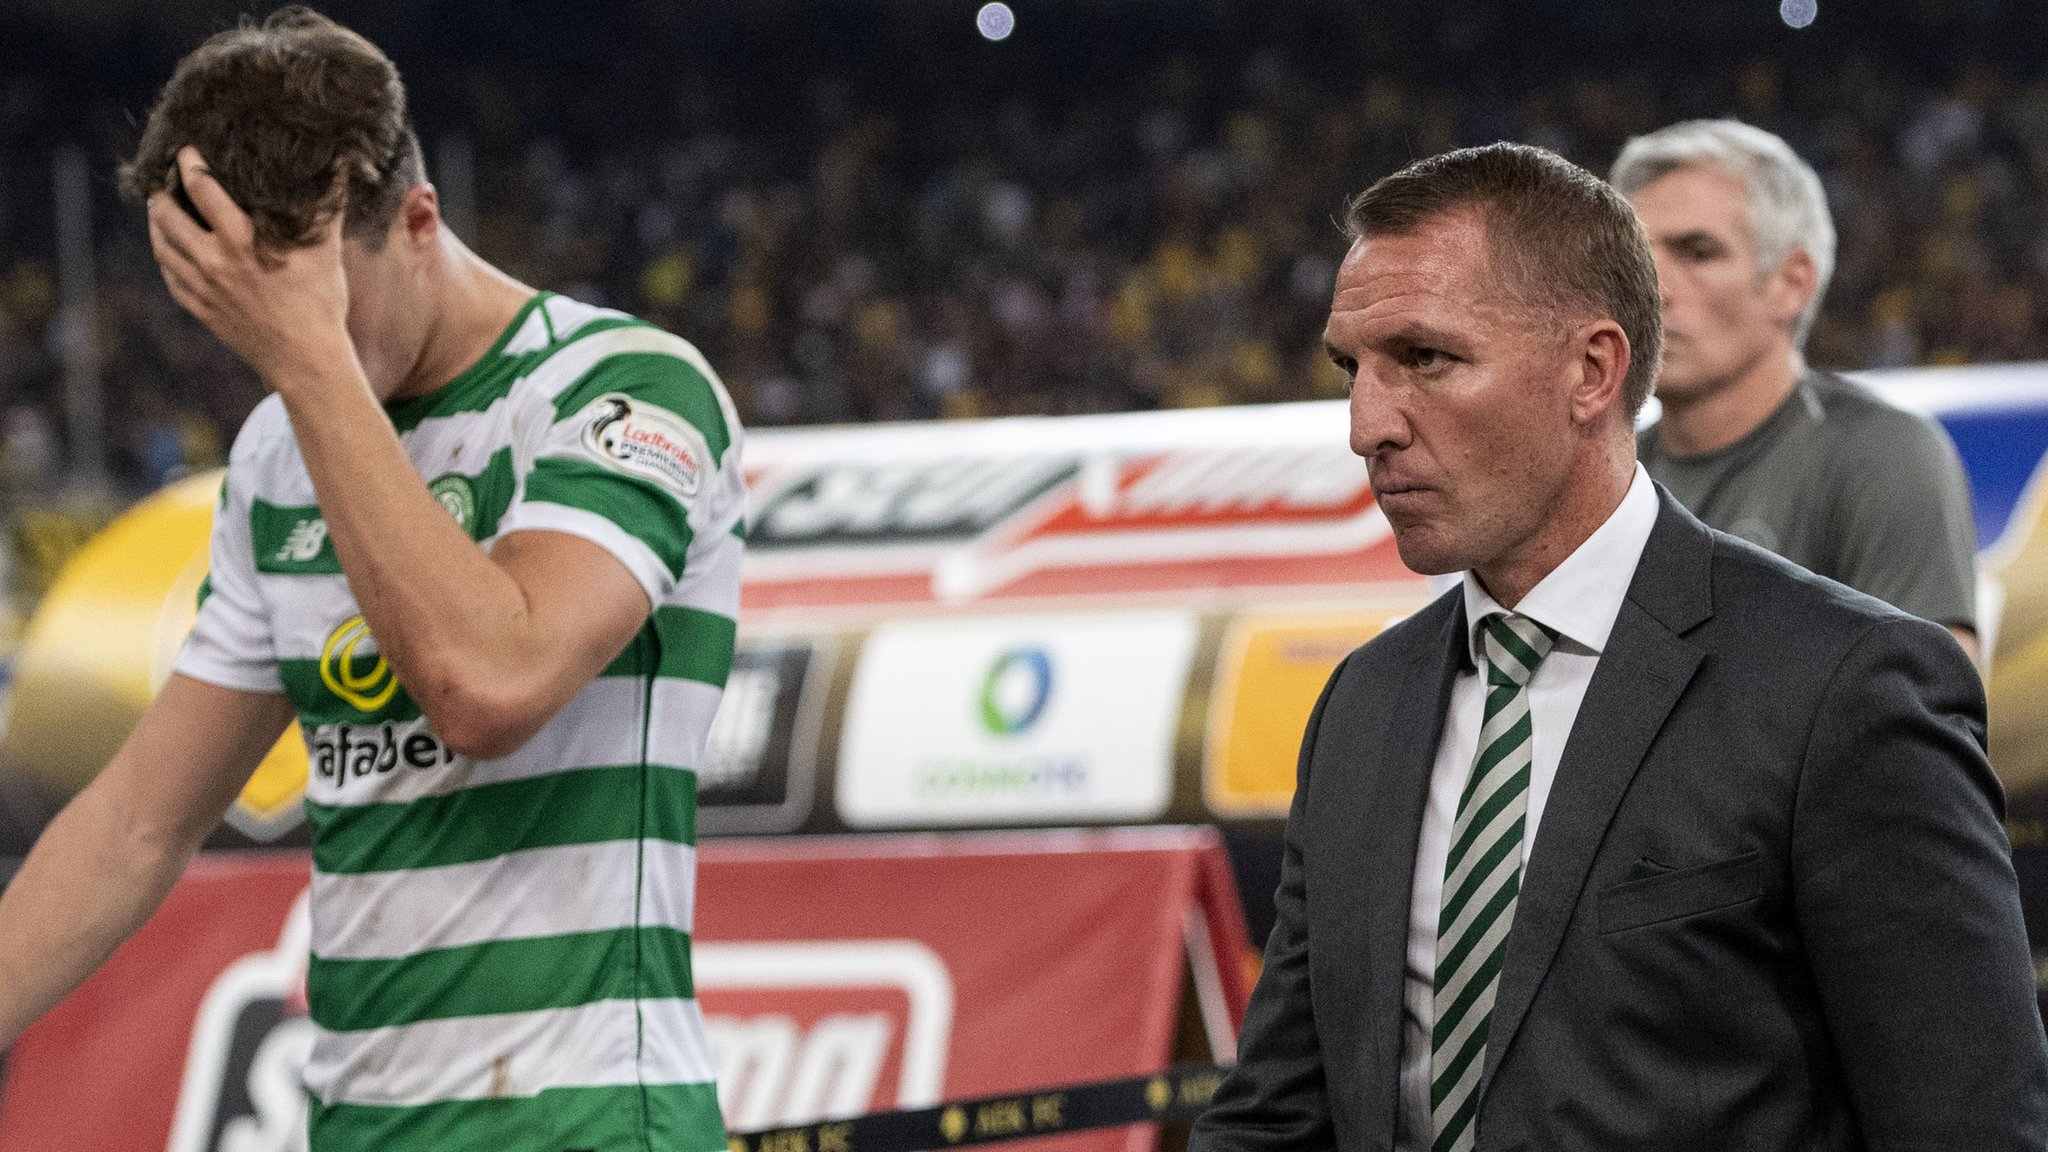 'It's not rocket science' - Rodgers on Celtic's Champions League exit